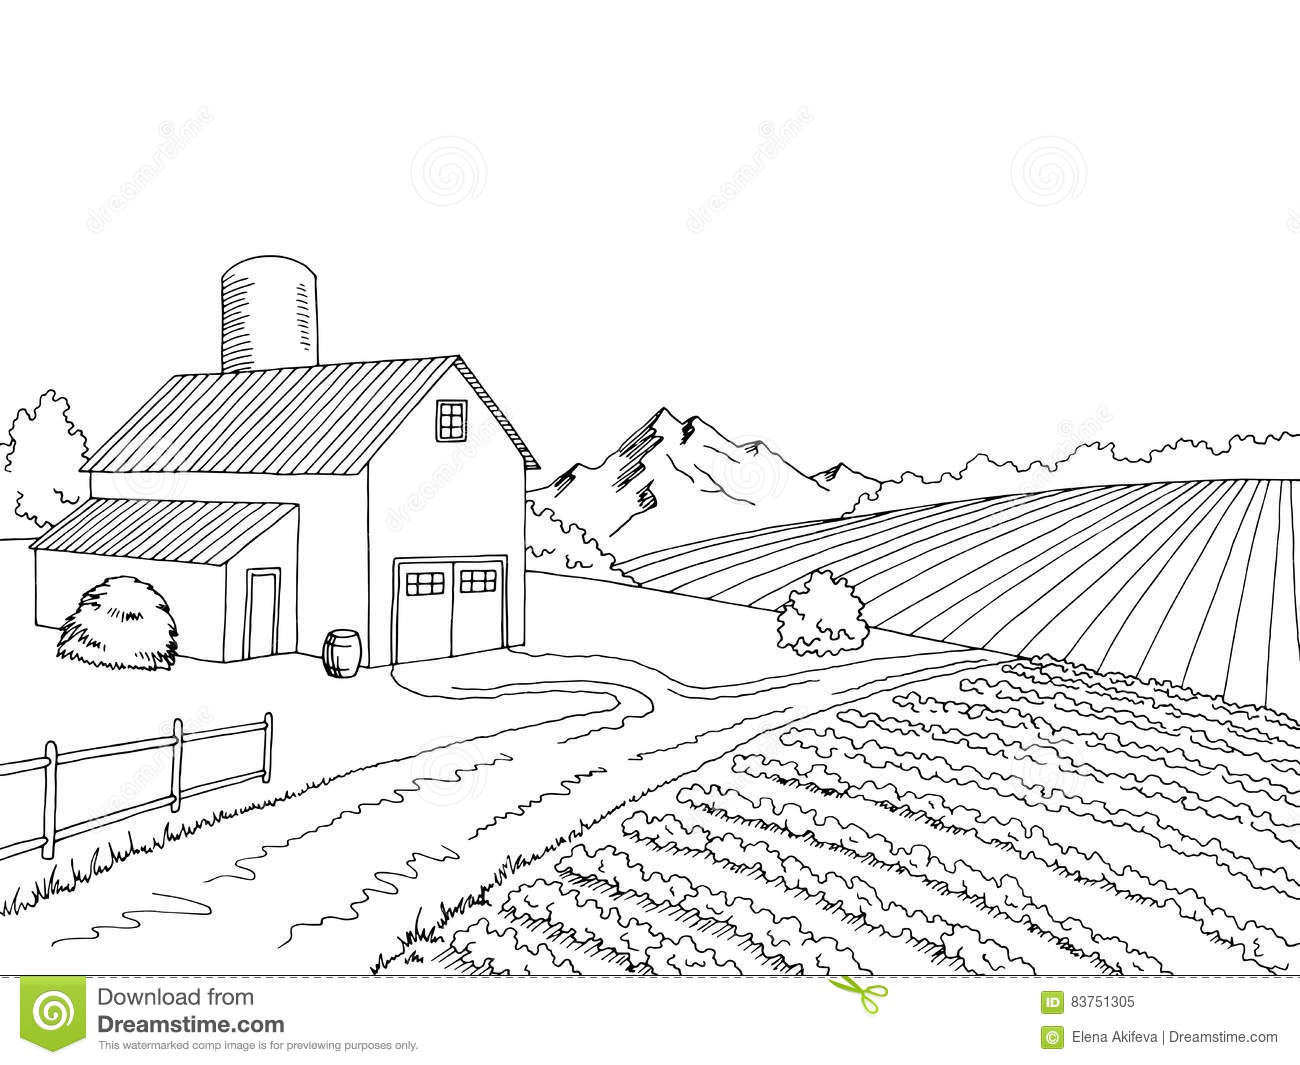 Farm Field Graphic Black White Sketch Illustration Stock Vector ... for Farm Field Sketch  303mzq